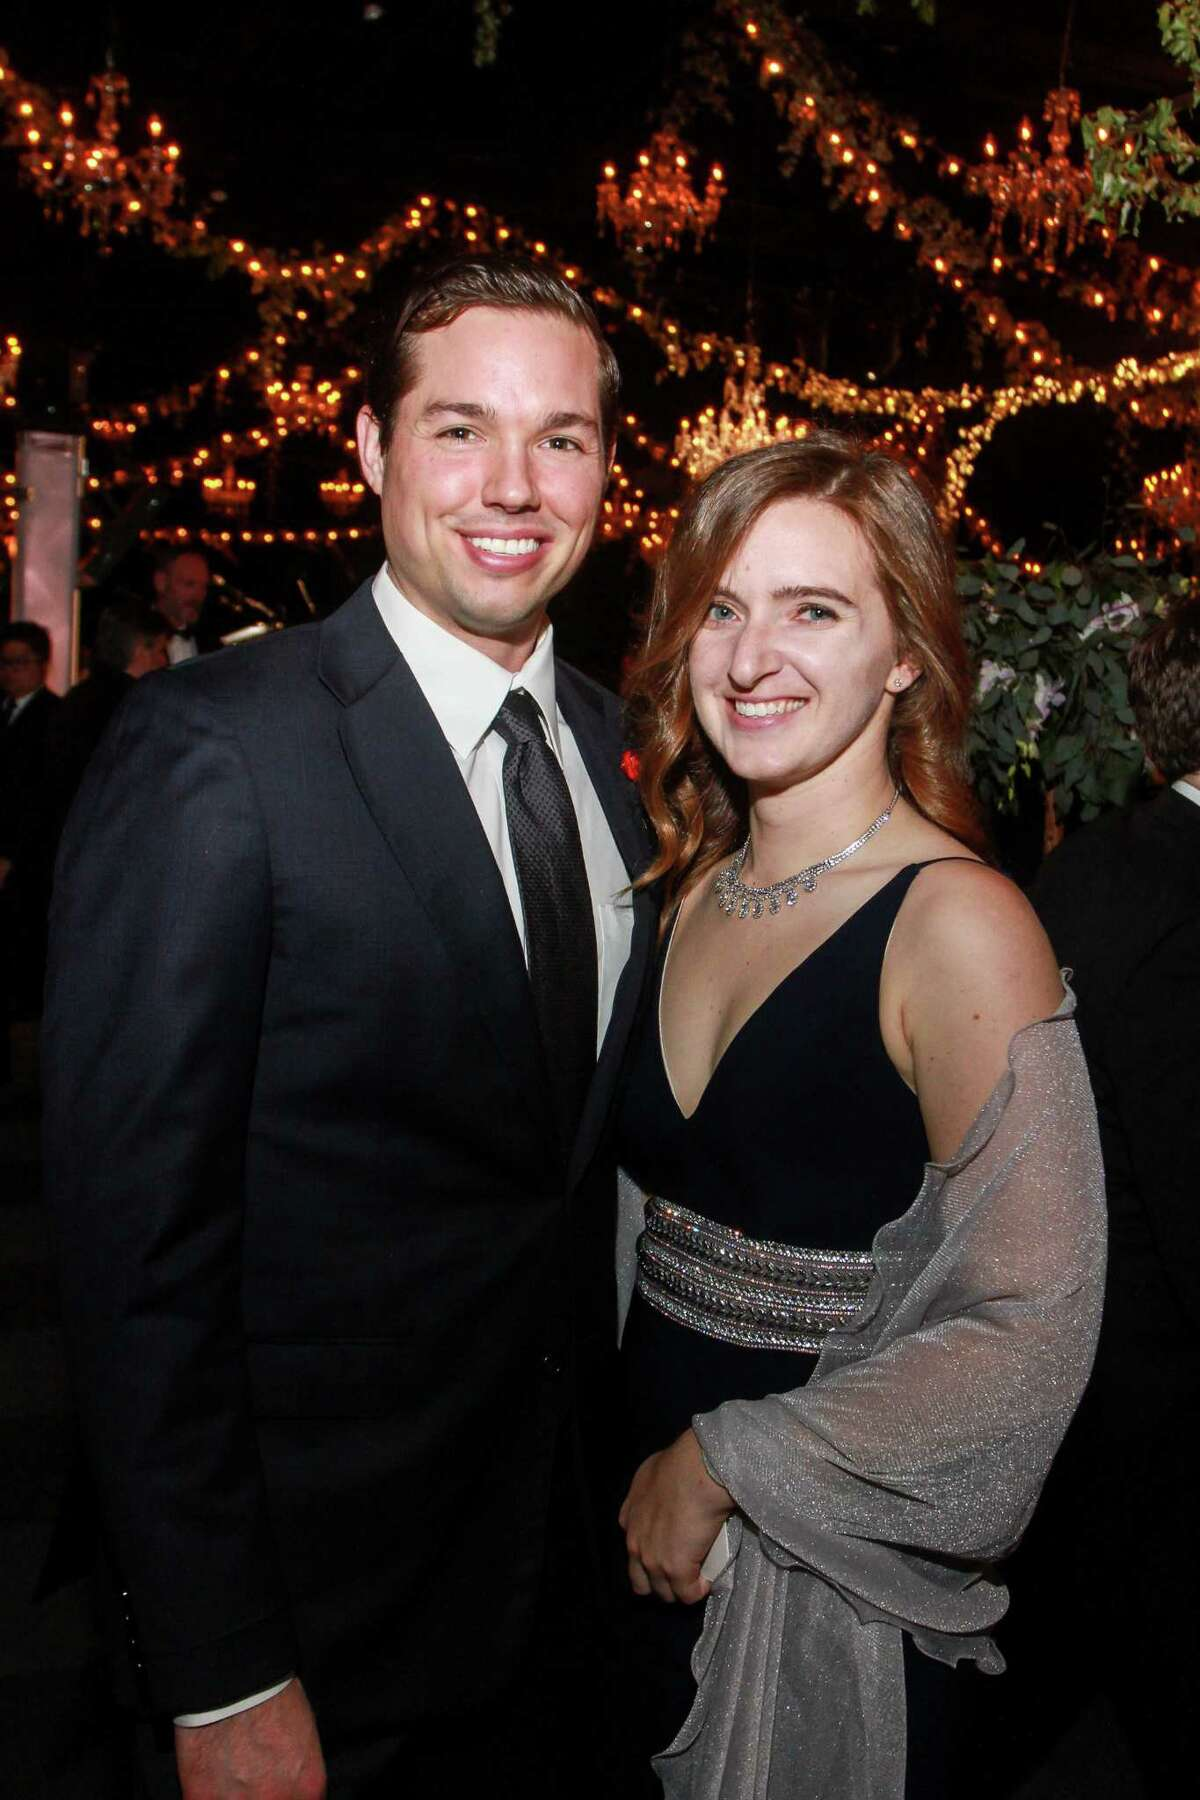 Jordan Strauss and Melissa Cassel at the Society for the Performing Arts Gala.